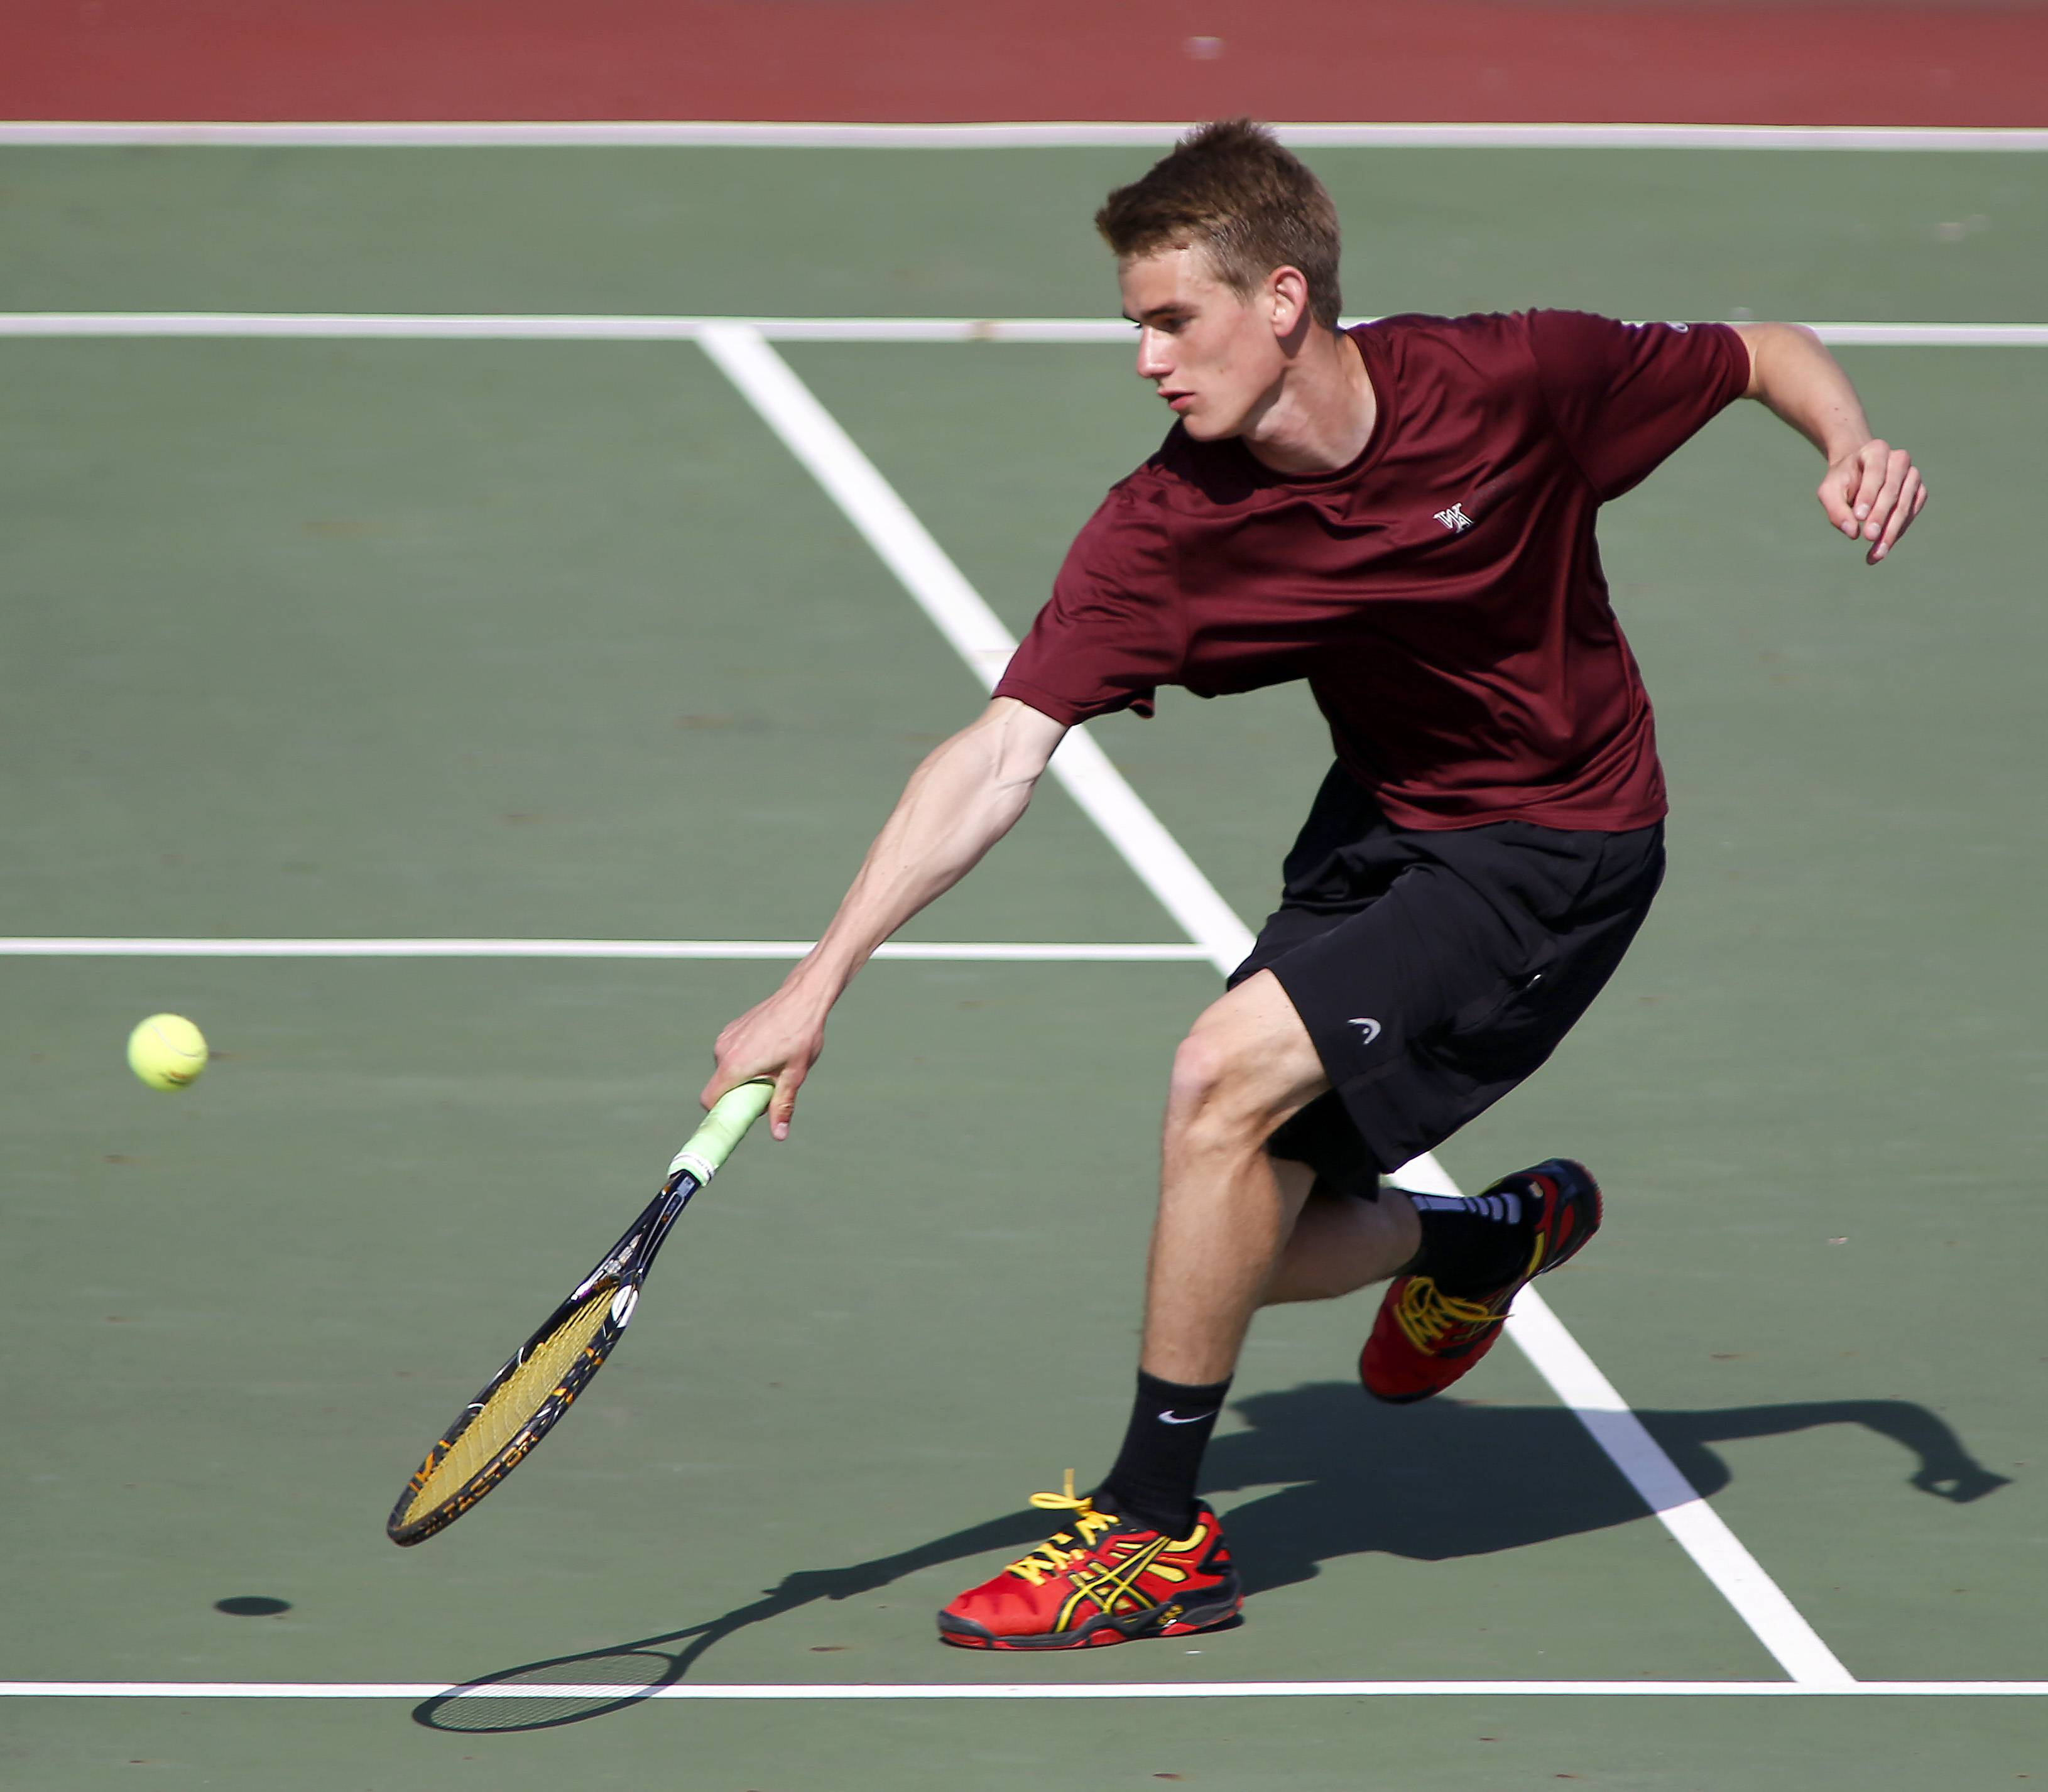 Wheaton Academy's Chris Jones returns a shot from St. Charles East's Jasper Koenen during the St. Charles East boys tennis sectional Saturday in St. Charles.